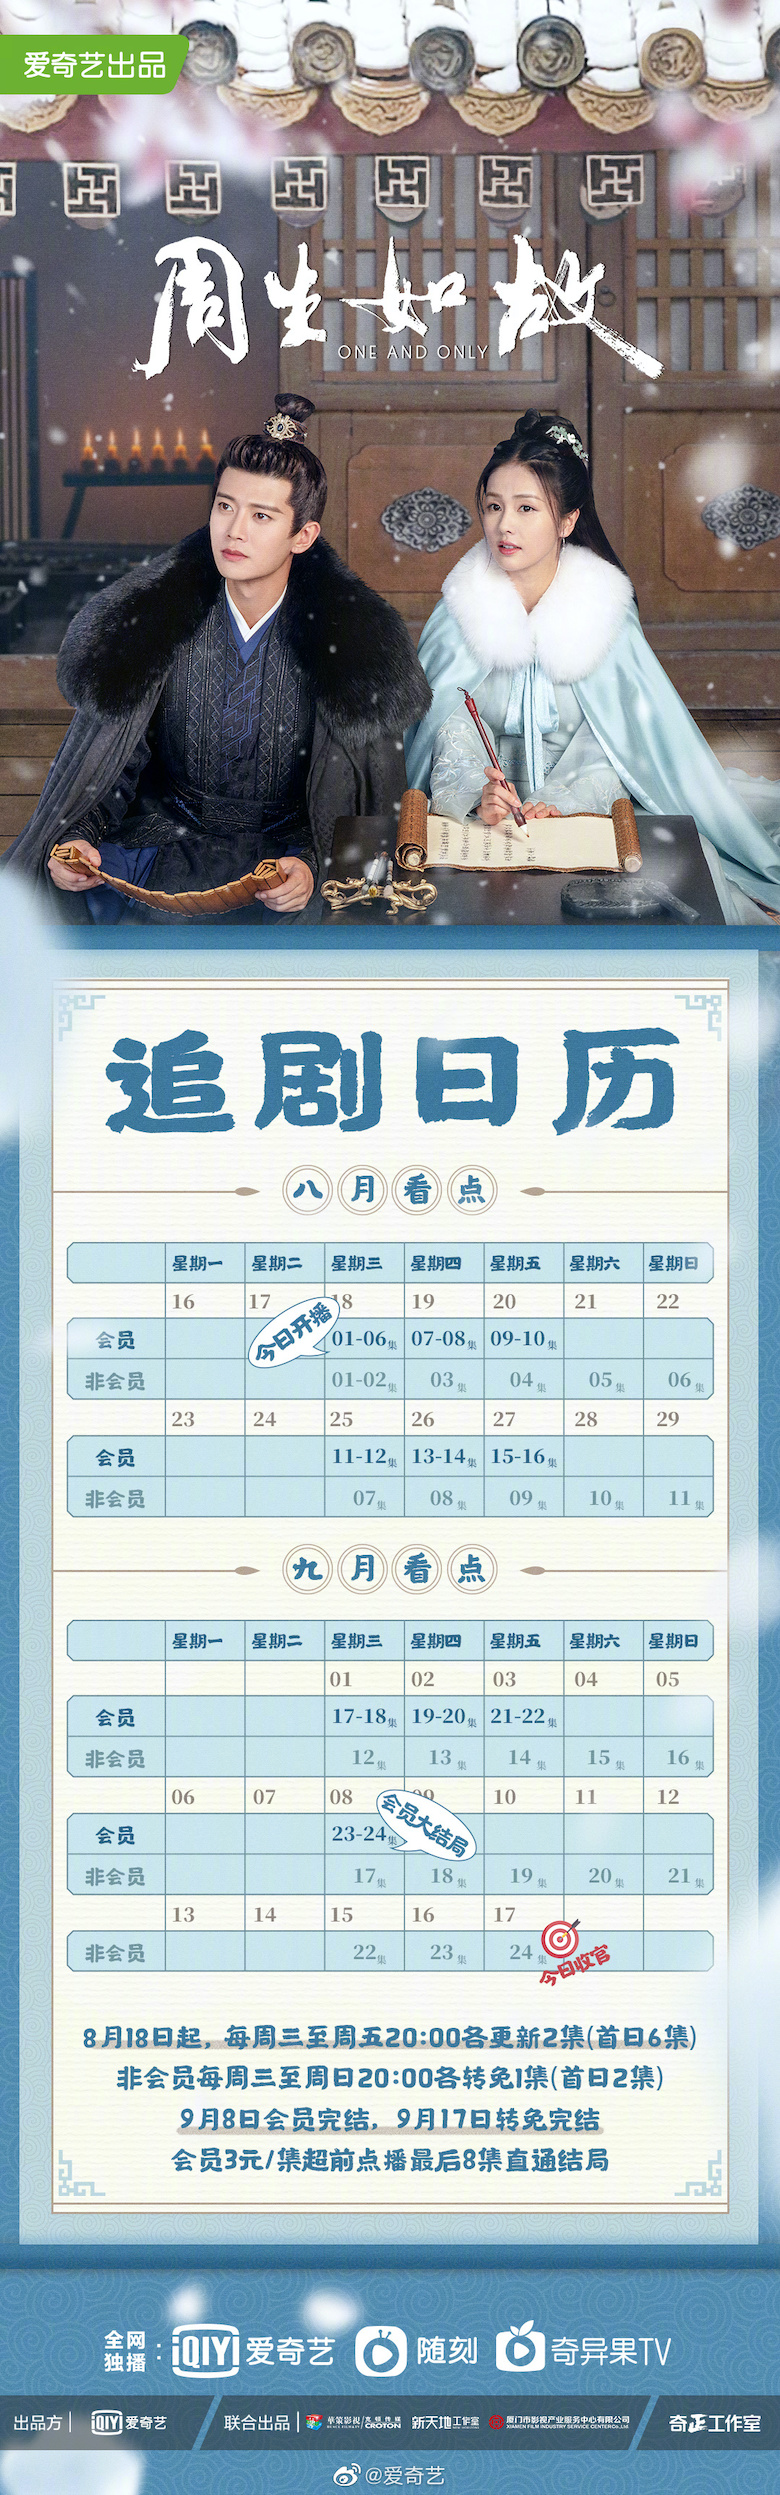 One And Only Chinese Drama Airing Calendar